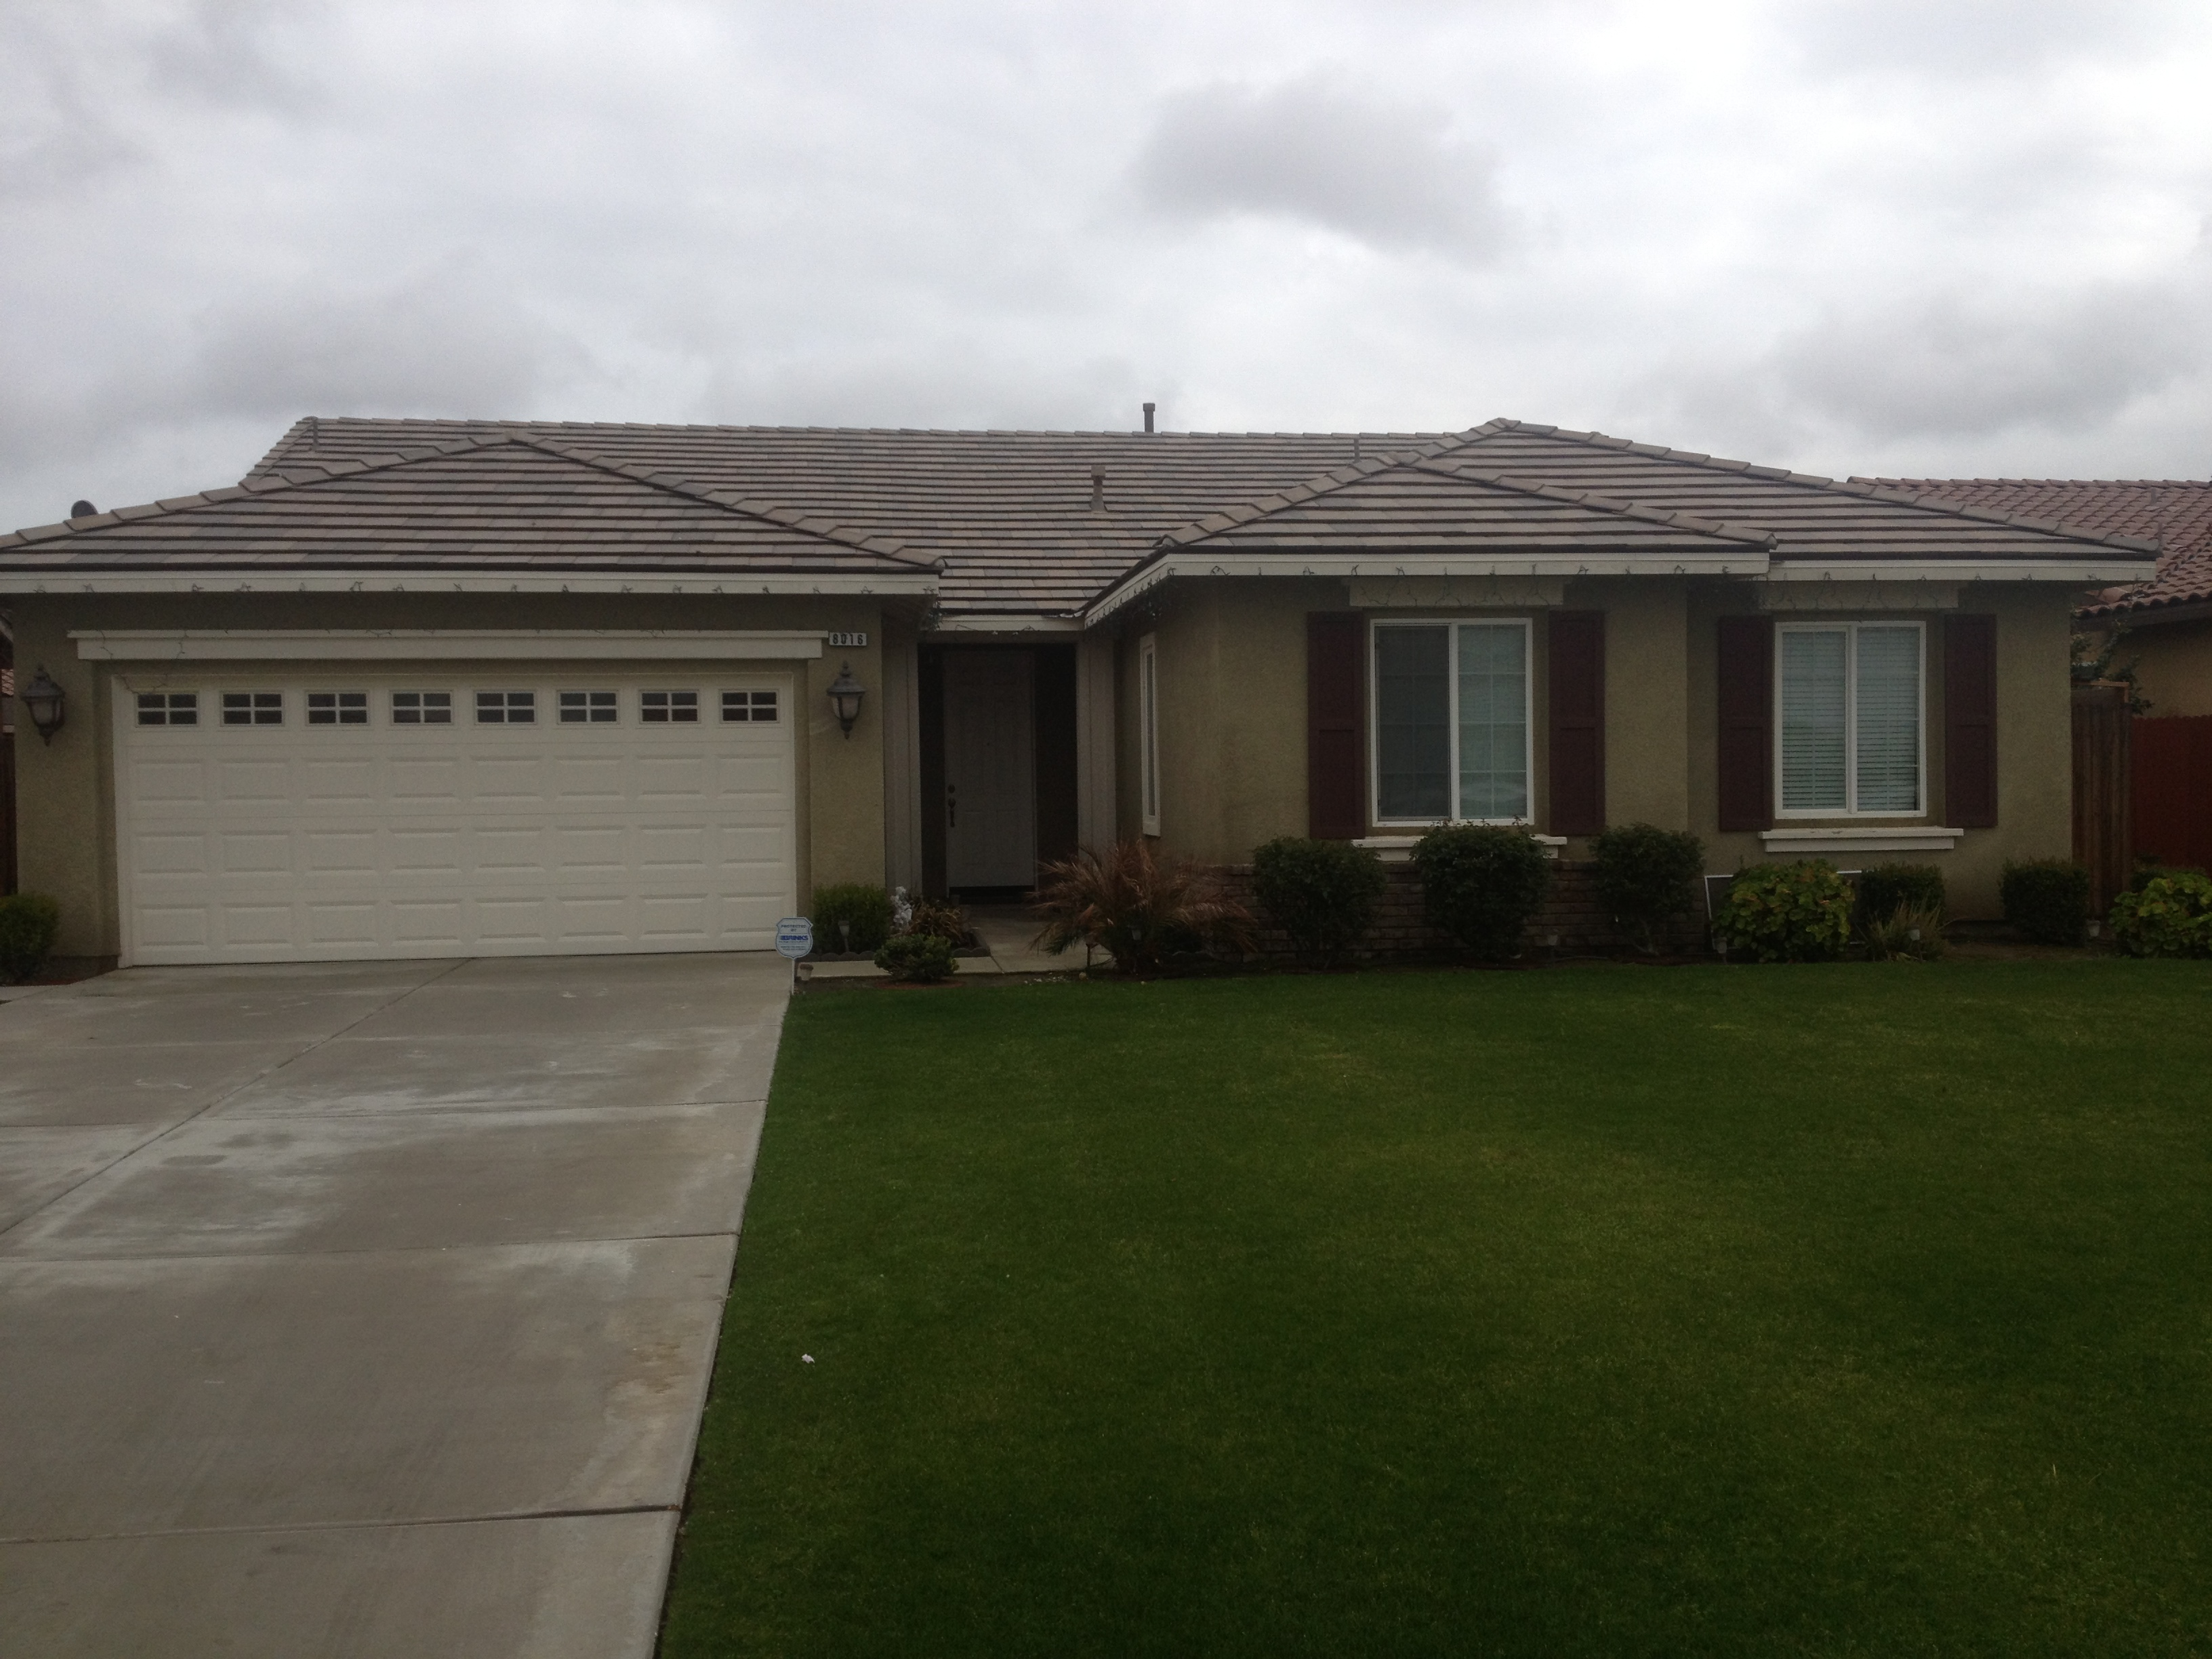 1495 8016 Boggs Ct Bakersfield Ca 93313 Southwest